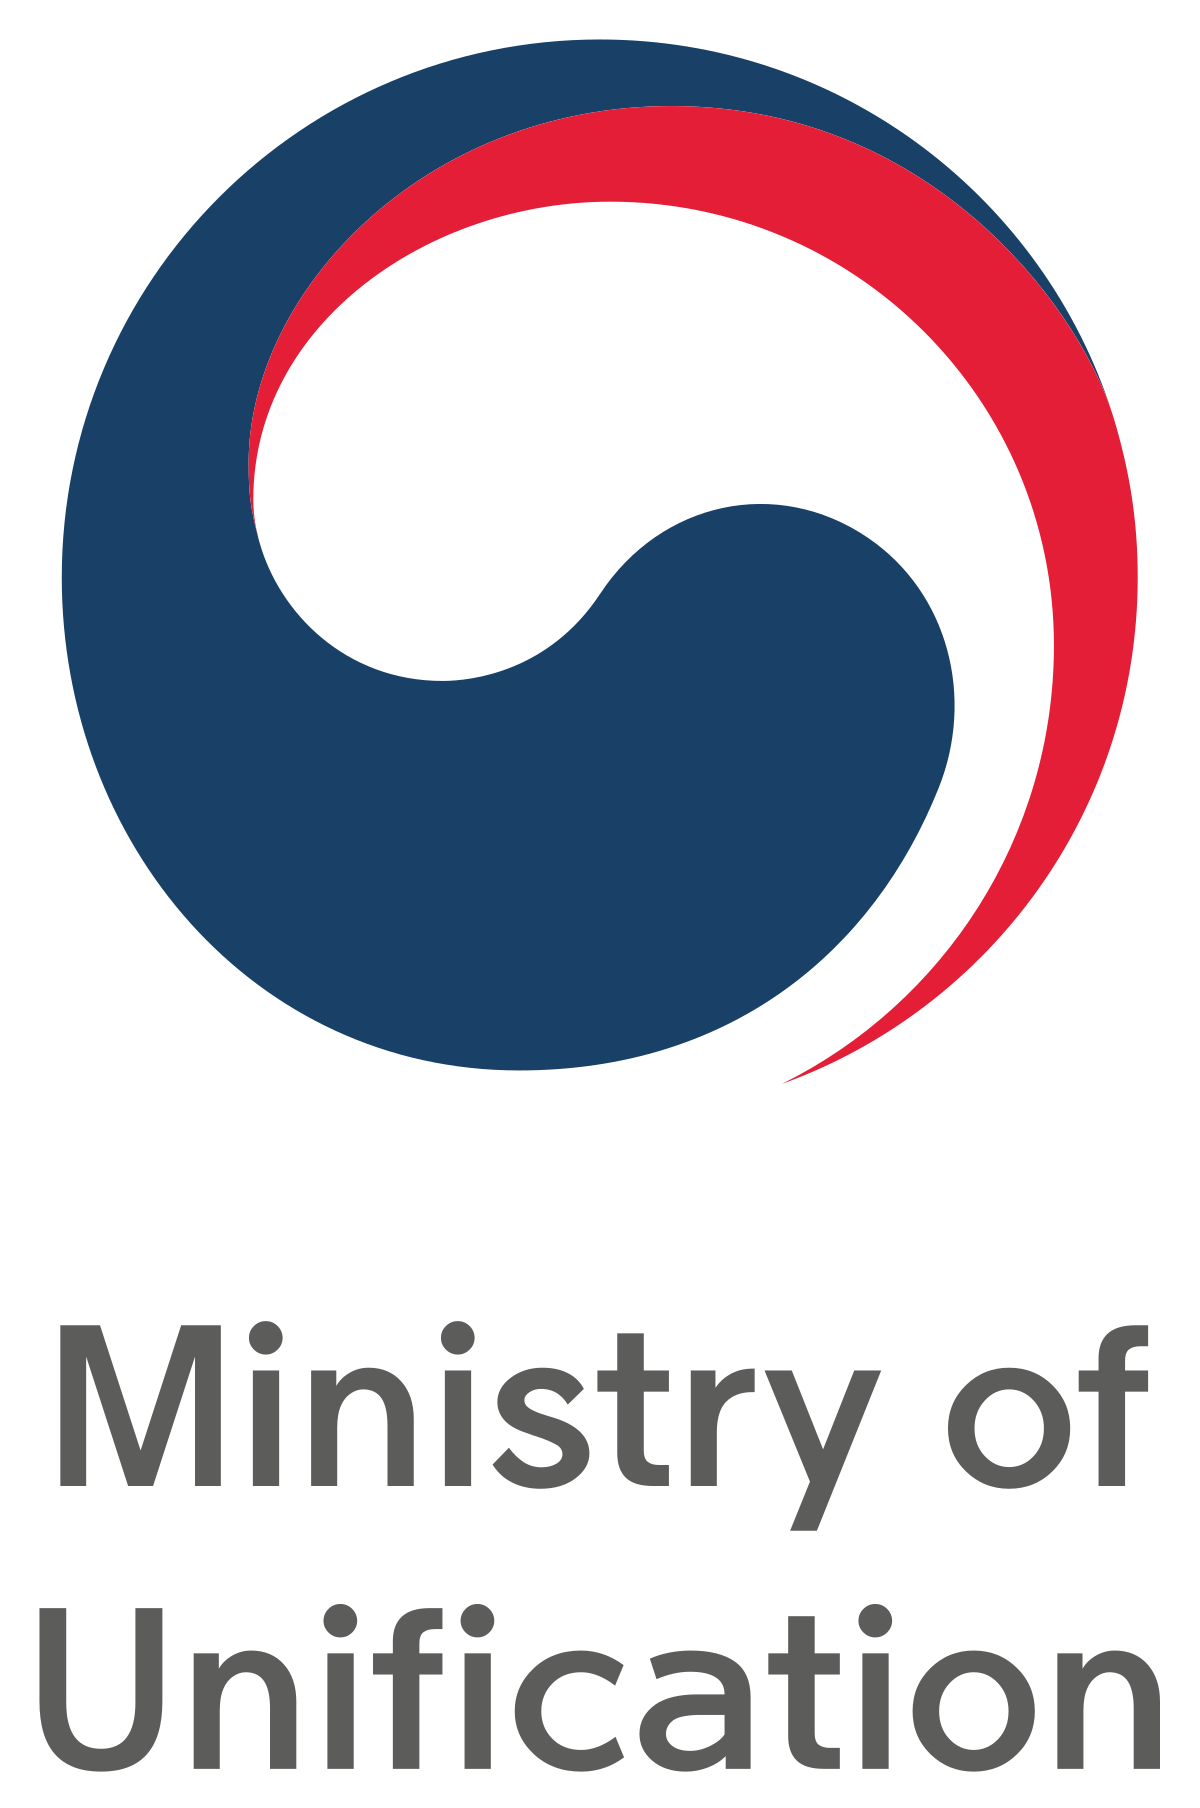 Ministry of Unification.